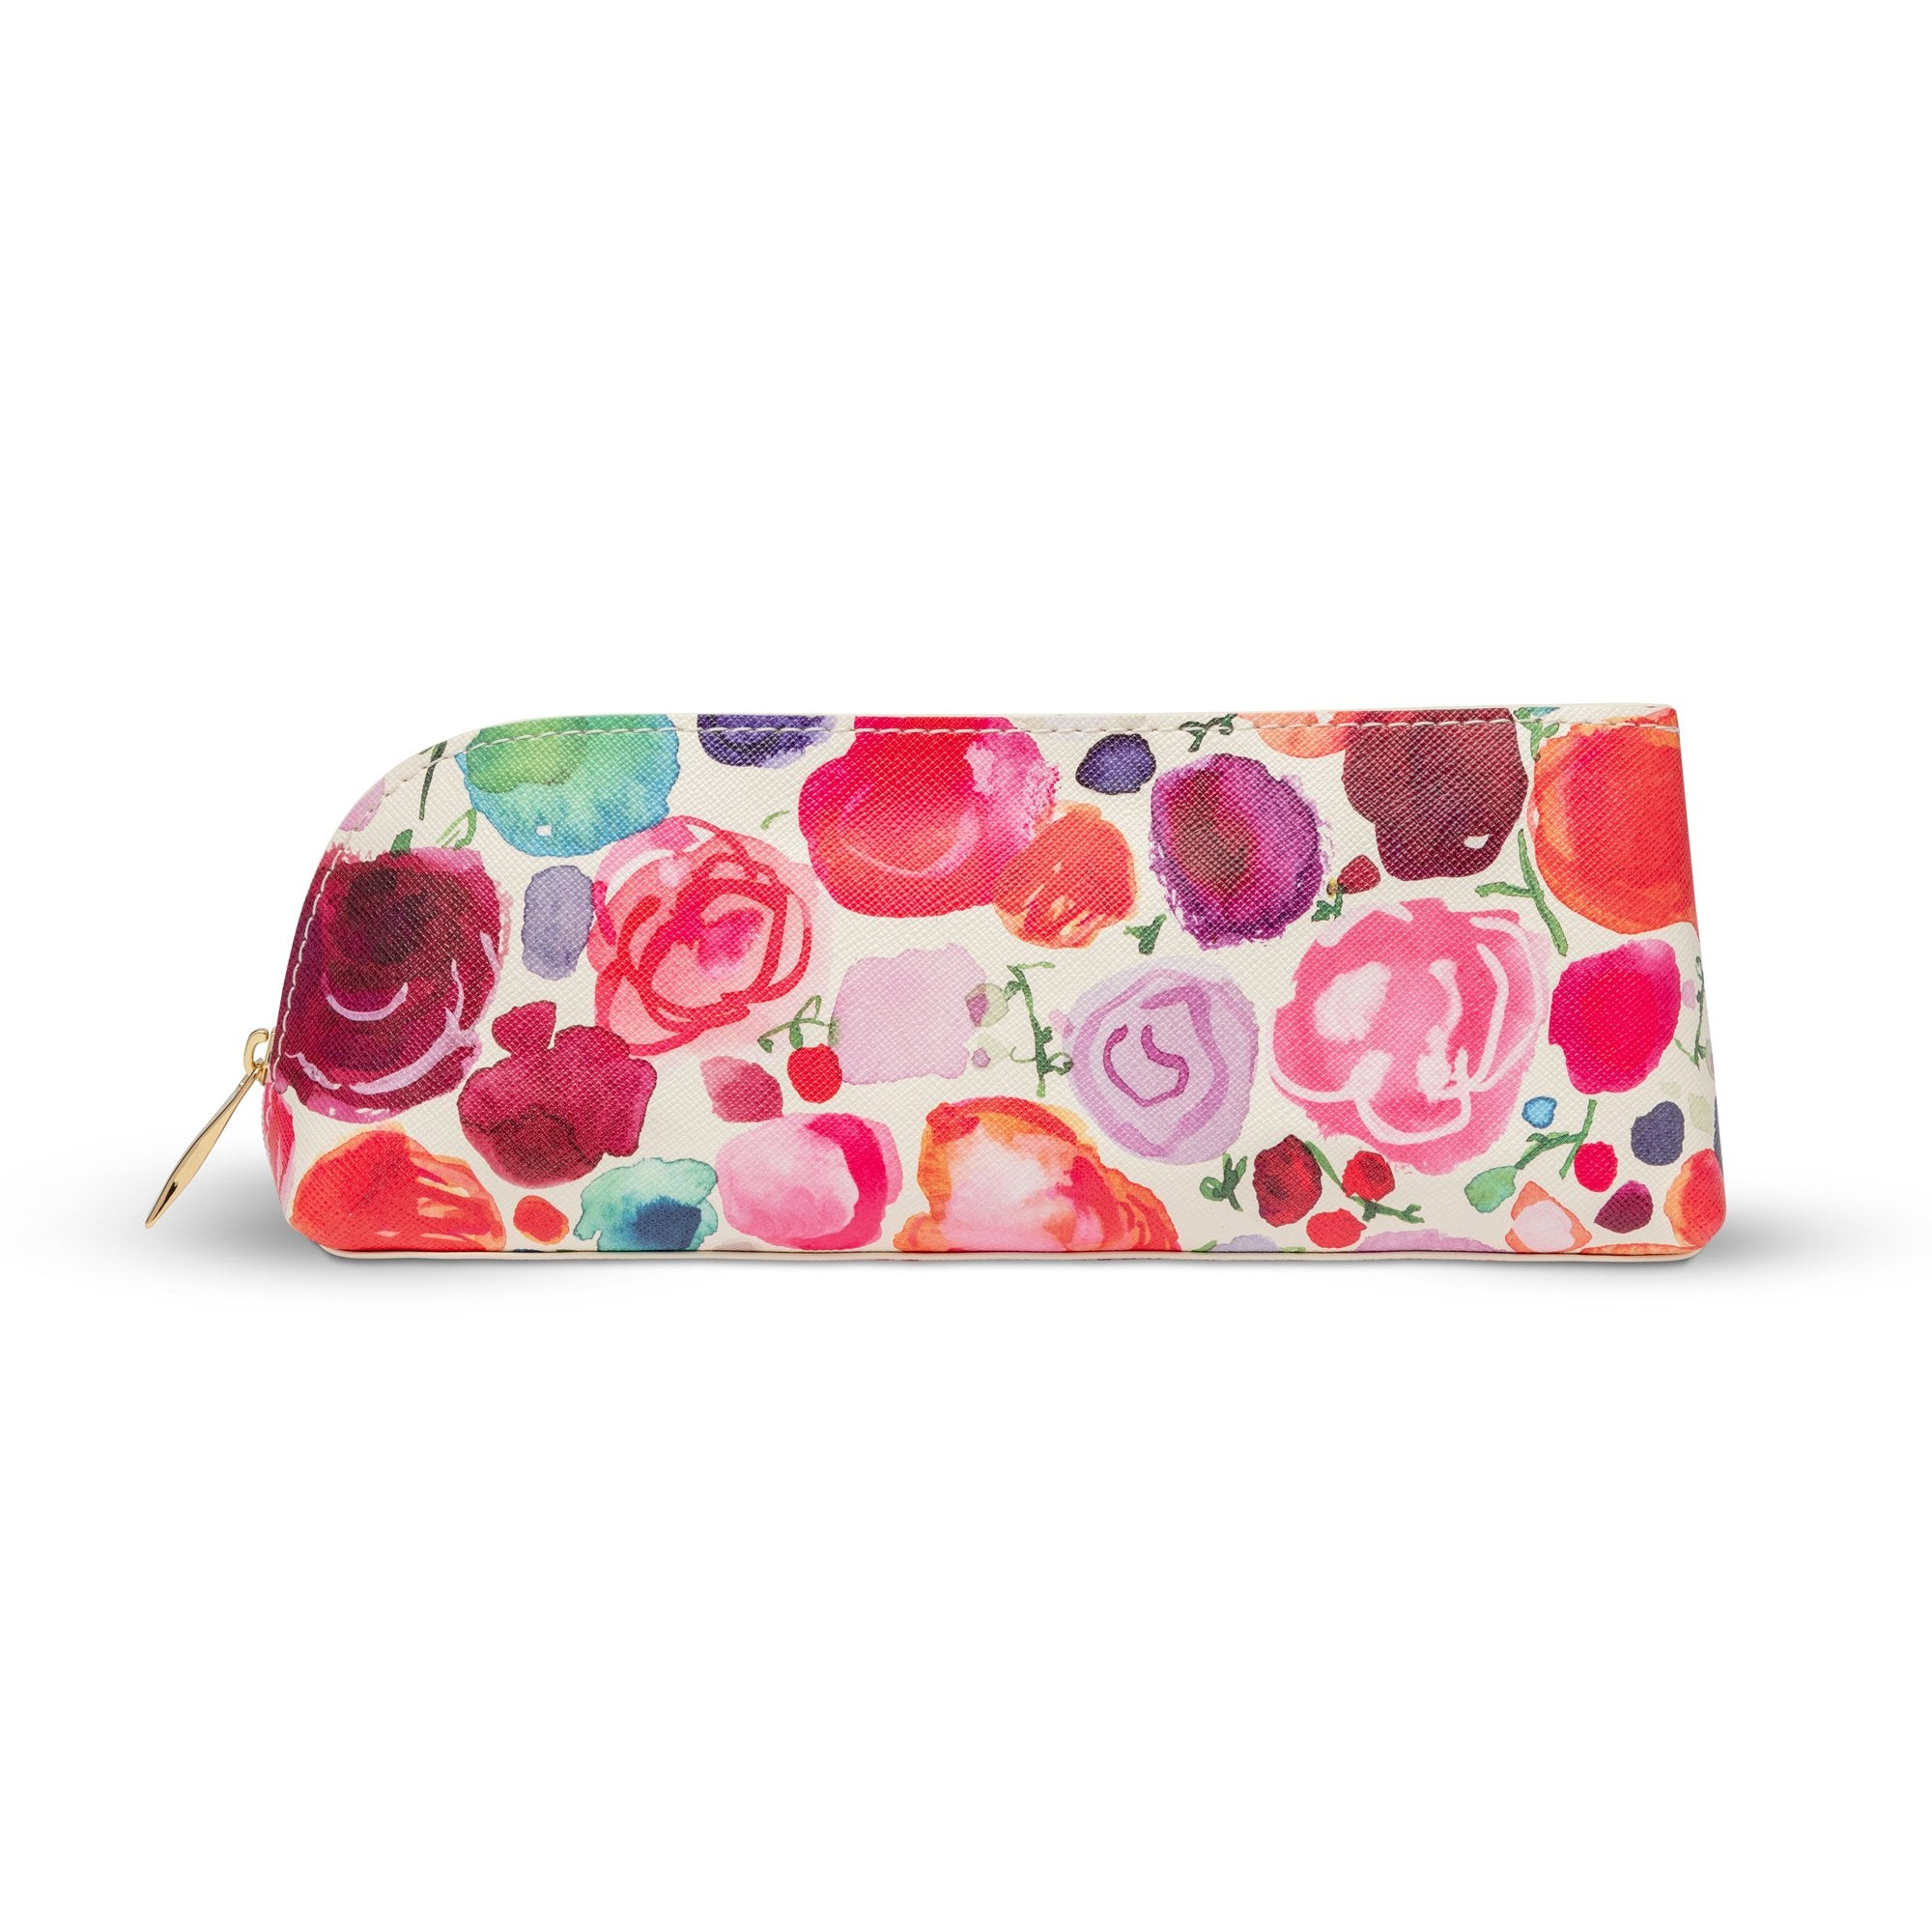 new product 368f8 c9b2a kate spade new york Pencil Case, Floral